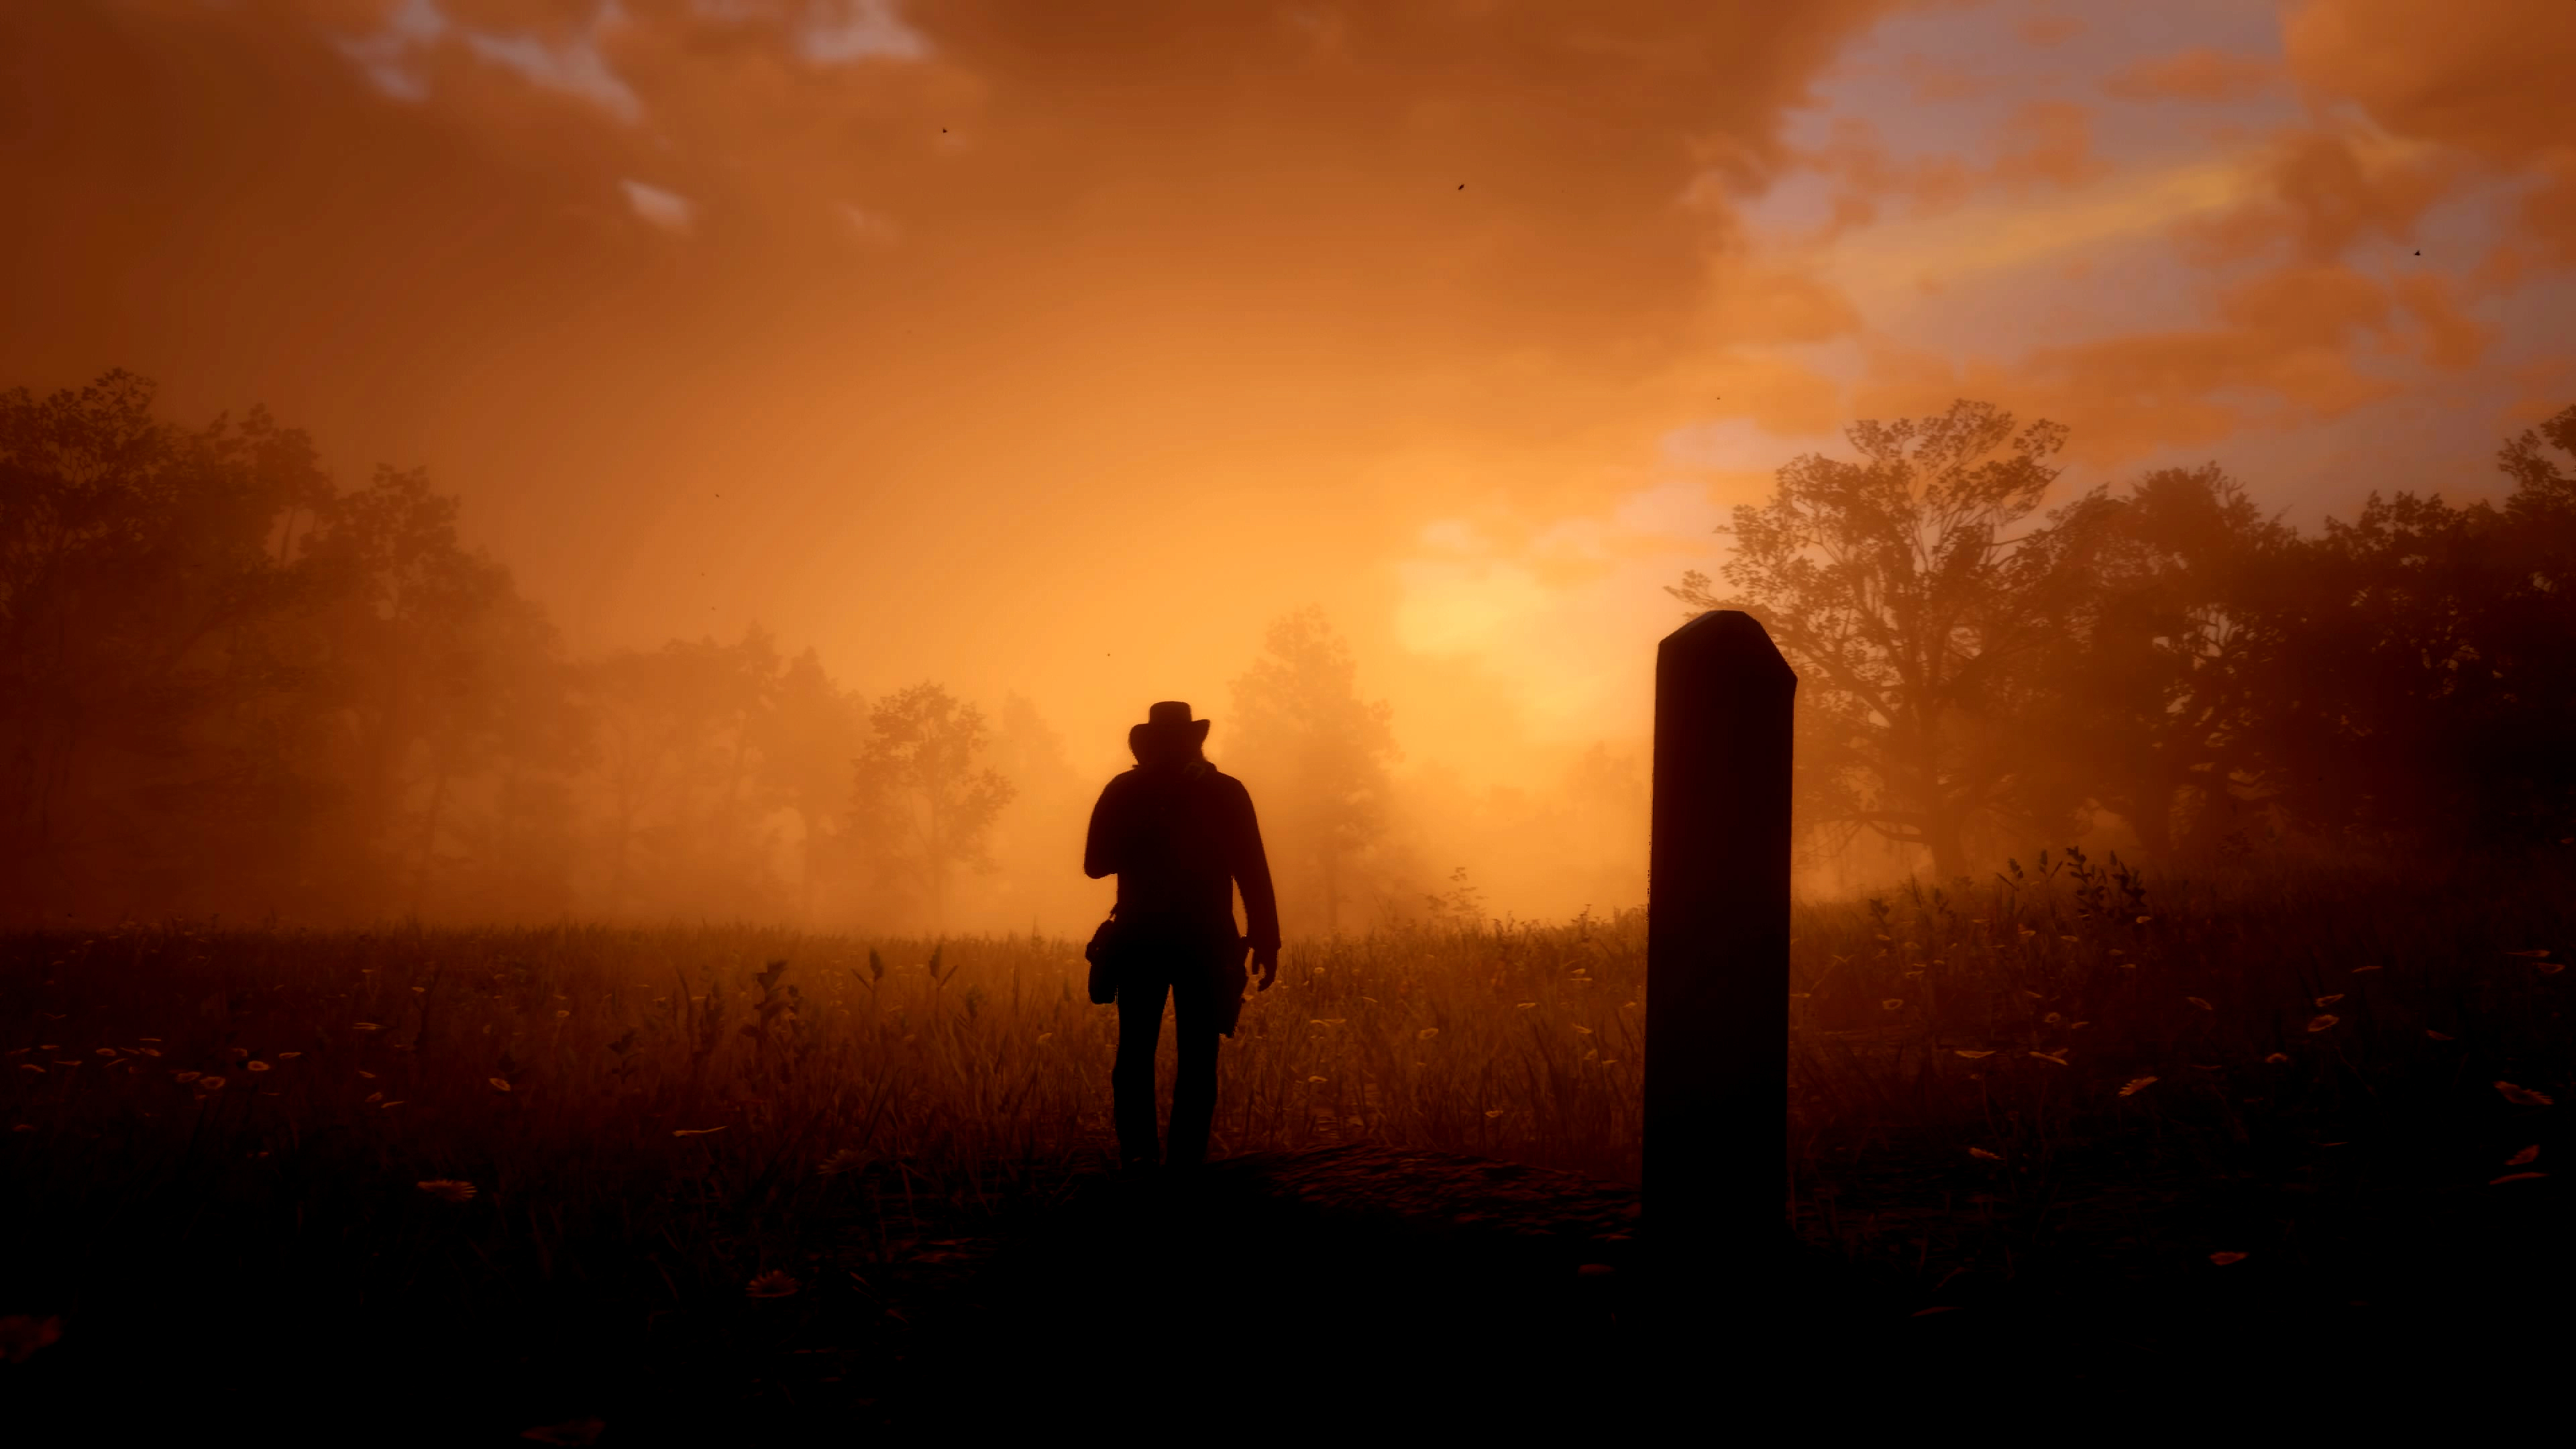 Wallpaper 4k Red Dead Redemption 2 Game 4k 2018 Games Wallpapers